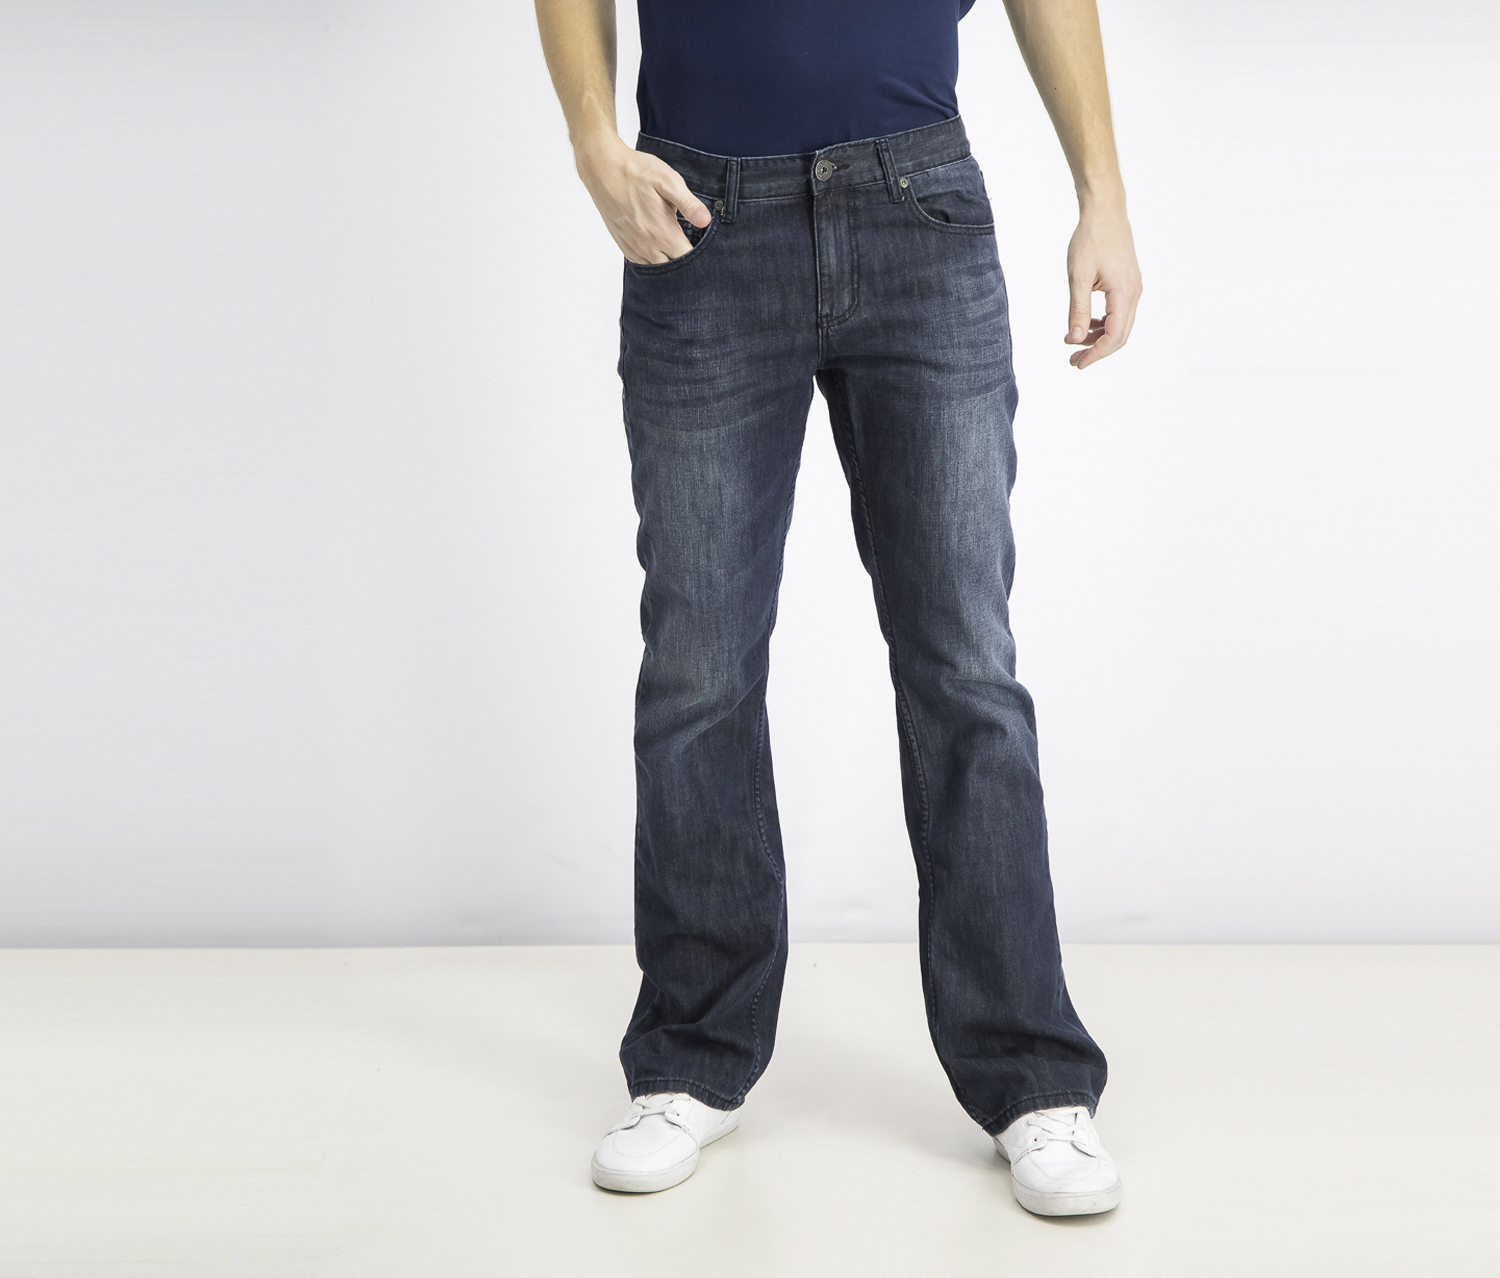 Men's Modern Bootcut Jeans, Dark Wash